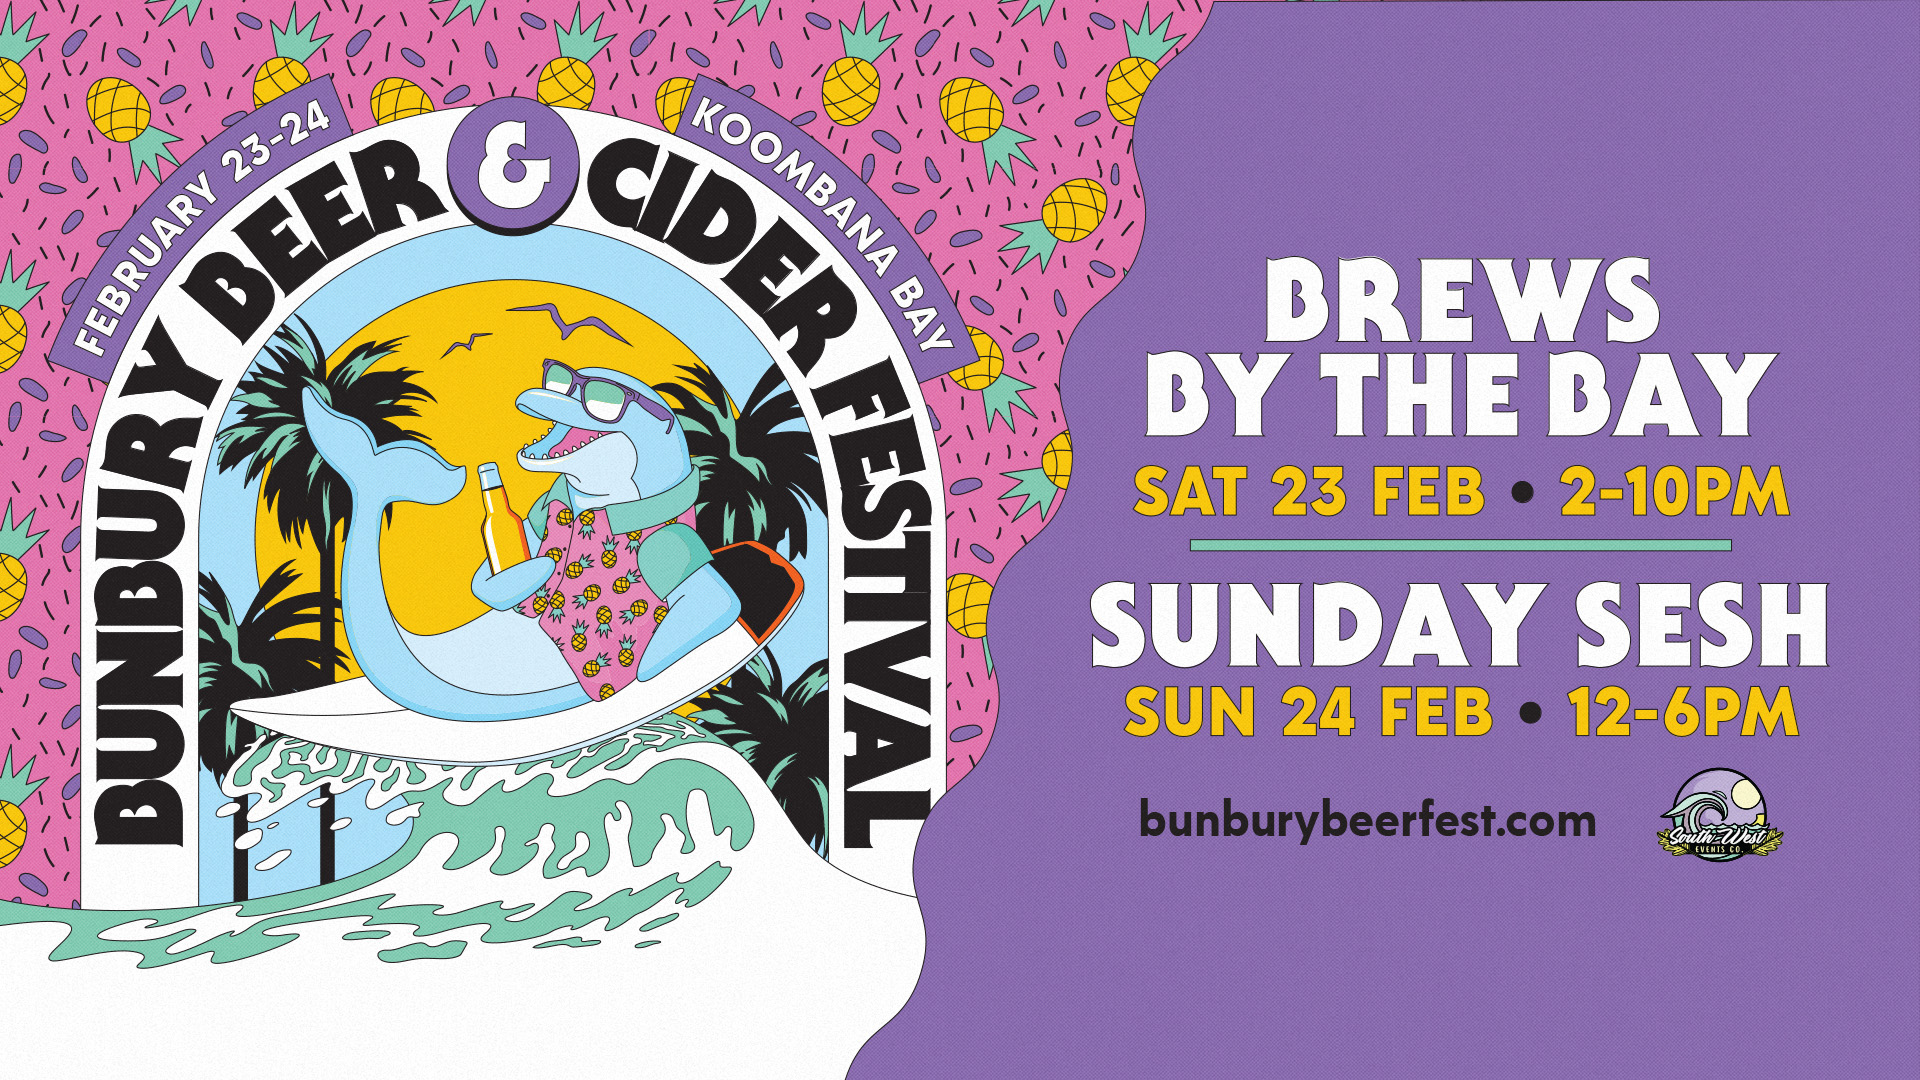 Tickets for Bunbury Beer & Cider Festival 2019 in Bunbury from Ticketbooth